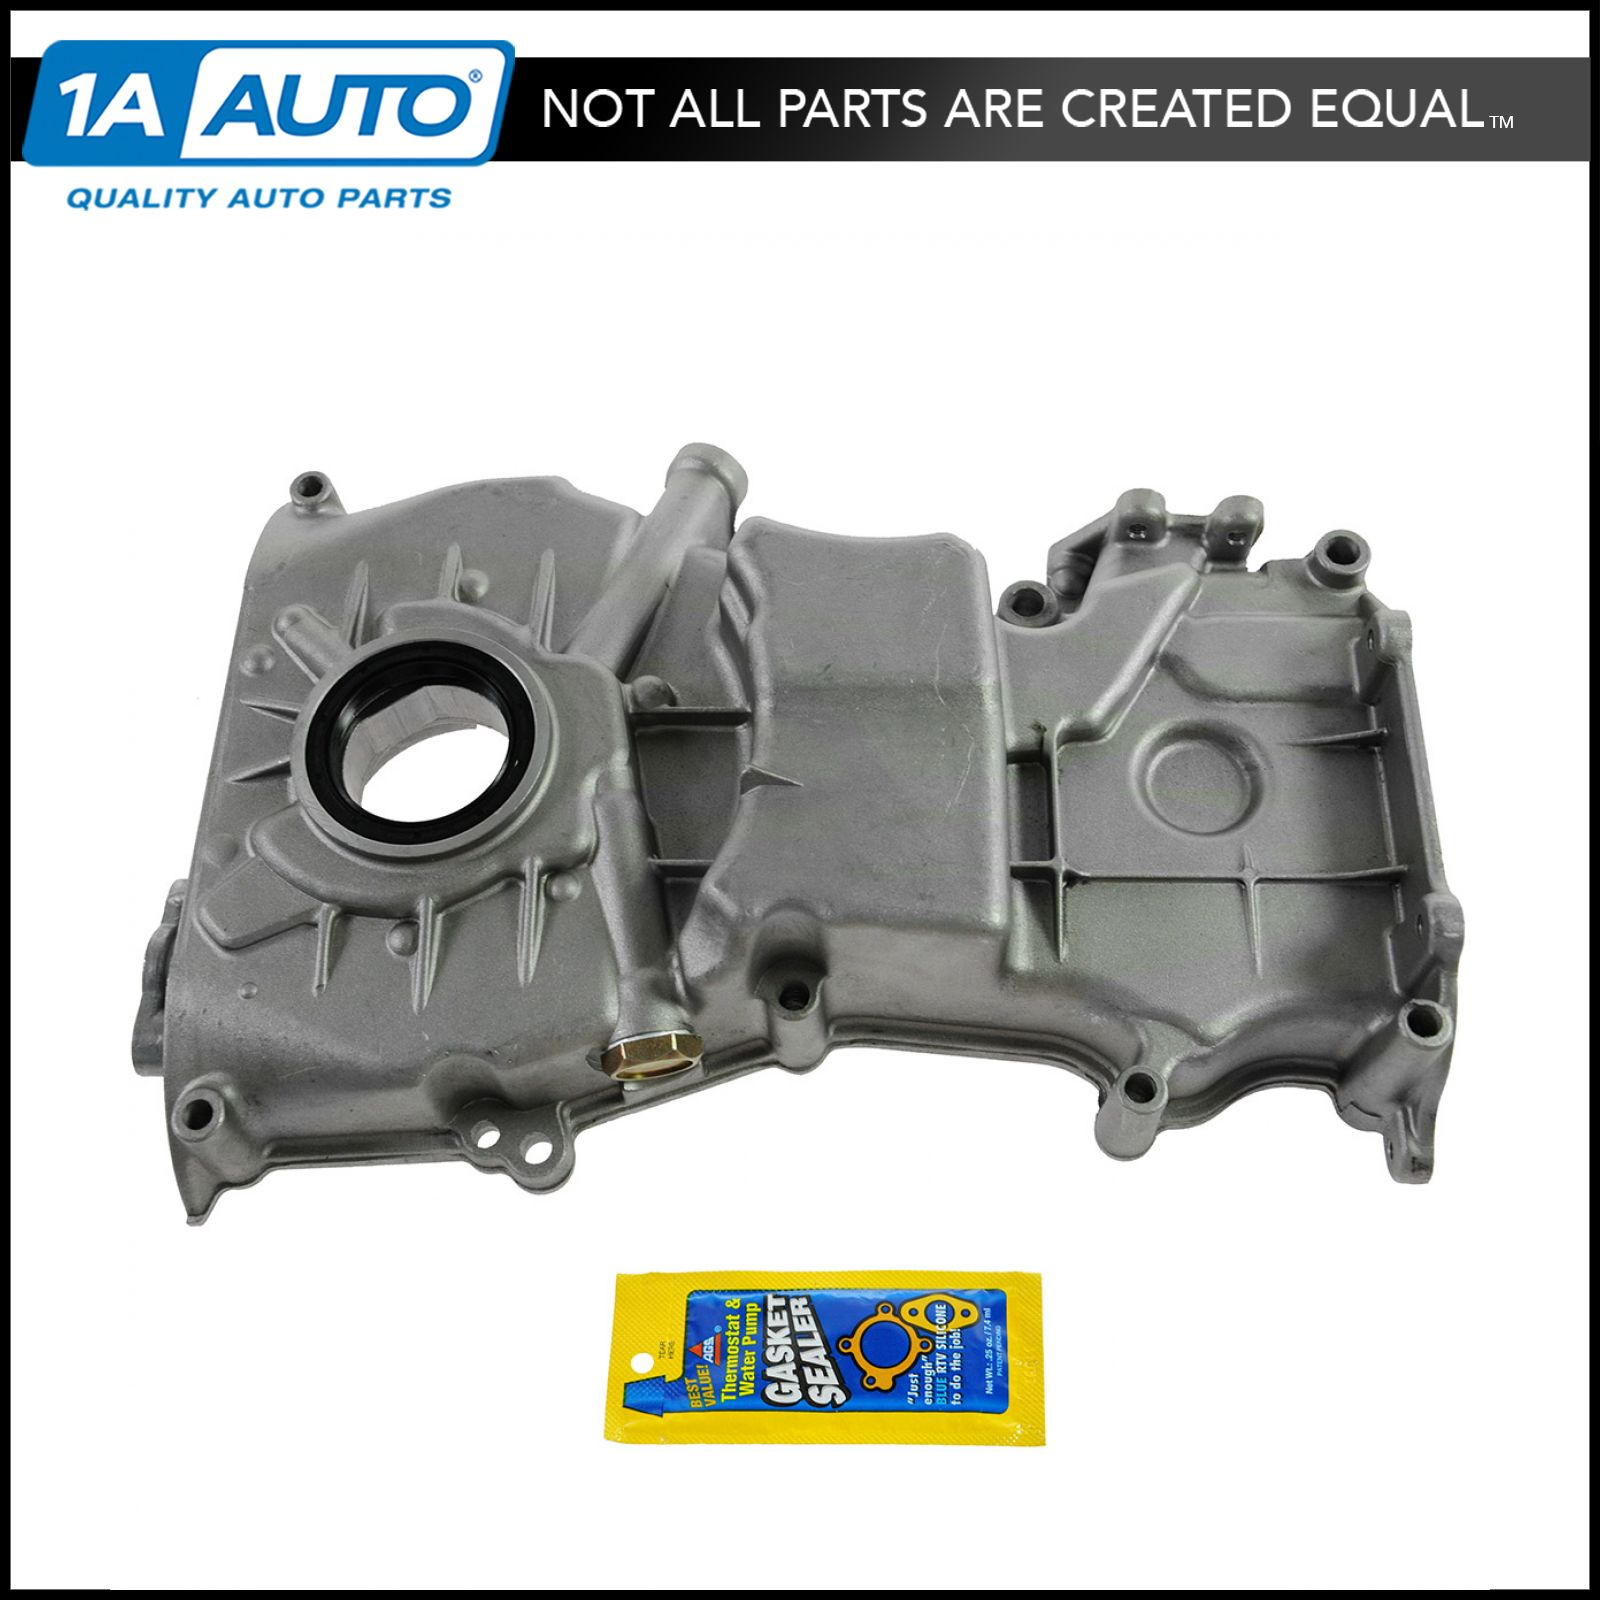 Details about Engine Timing Chain Cover for 90-95 Nissan Stanza Axxess 2 4L  KA24E